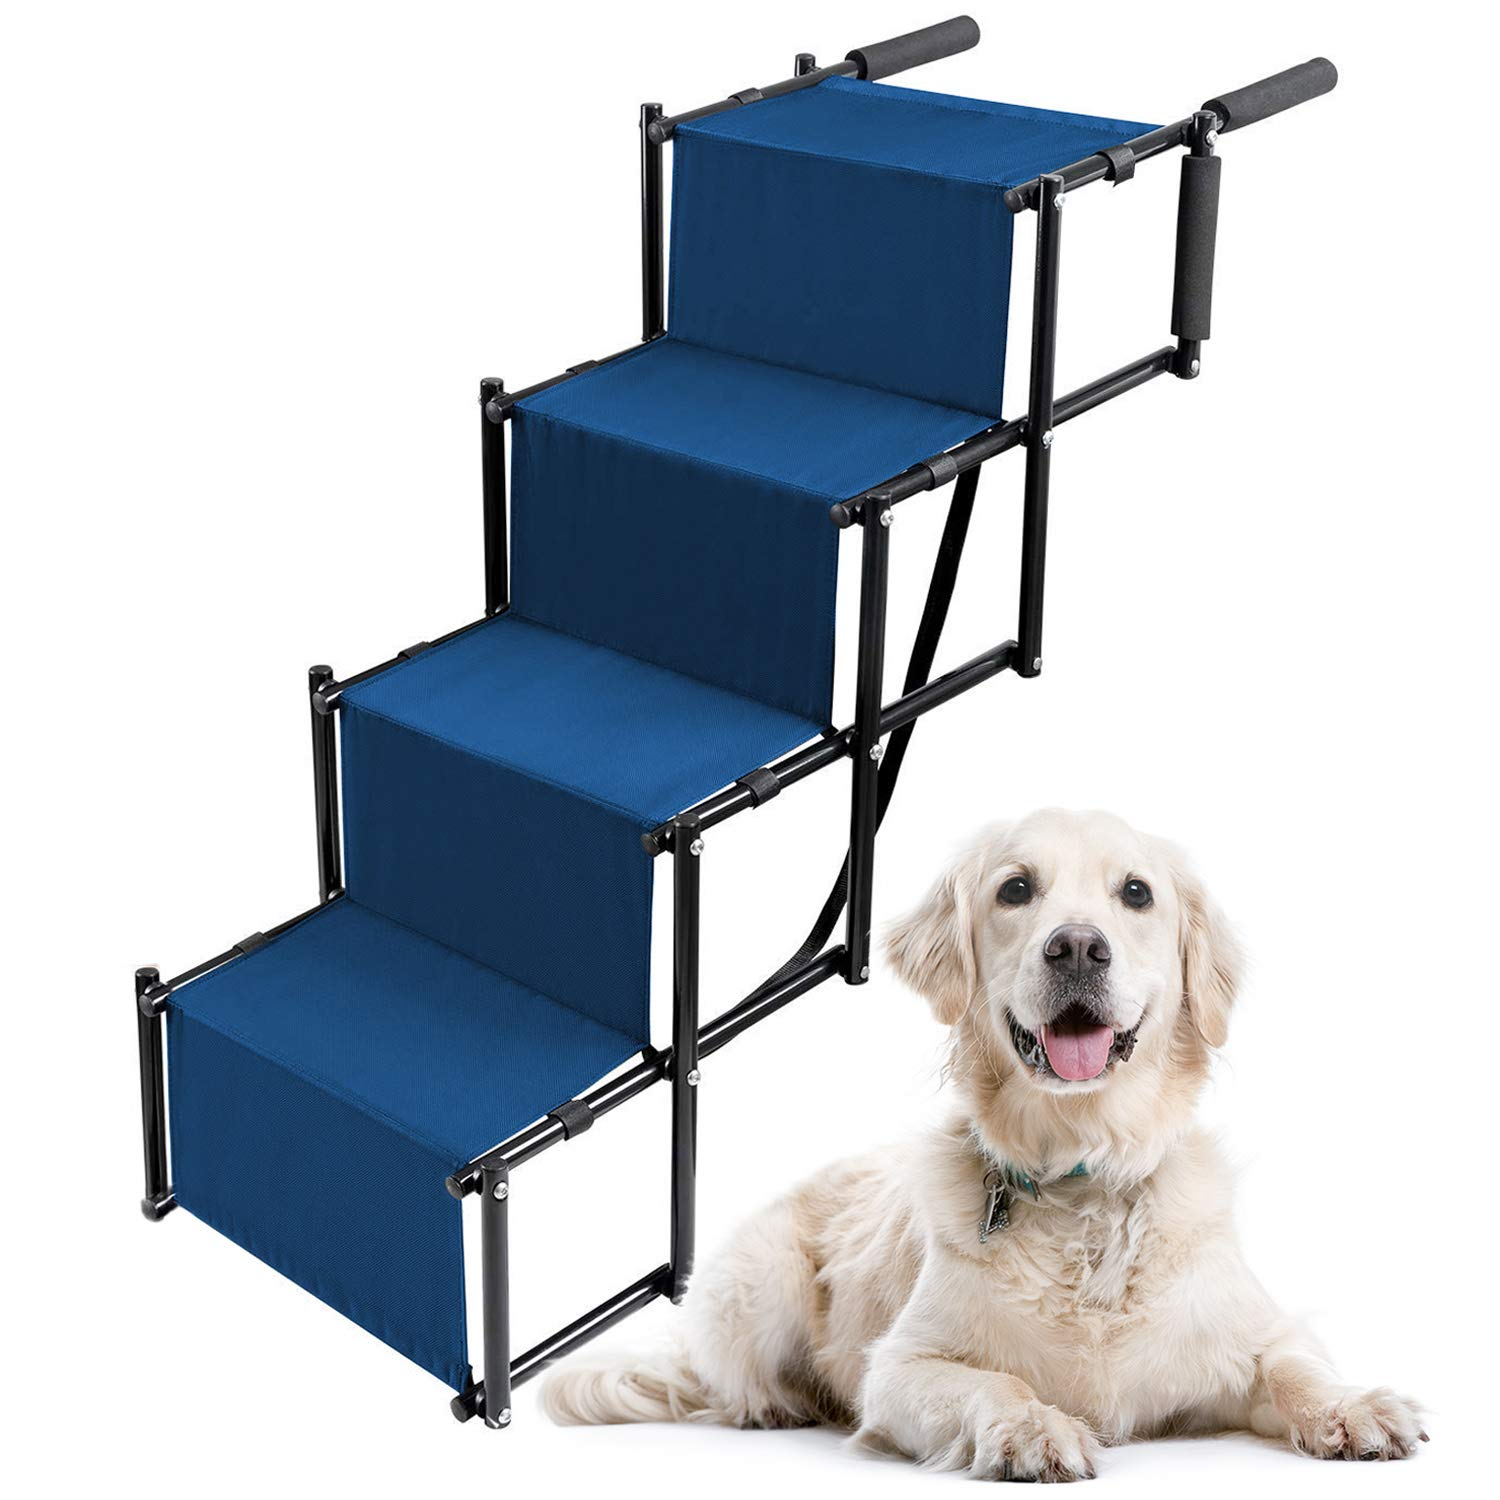 Lightweight Dog Stairs for Your Medium or Large Pet to Get Into The Car or SUV - Portable Ladder Ramp with Wide Steps - Folding Accordion Design Packs Small - Durable Metal Frame (Up to 120 lbs) by GoodBoy